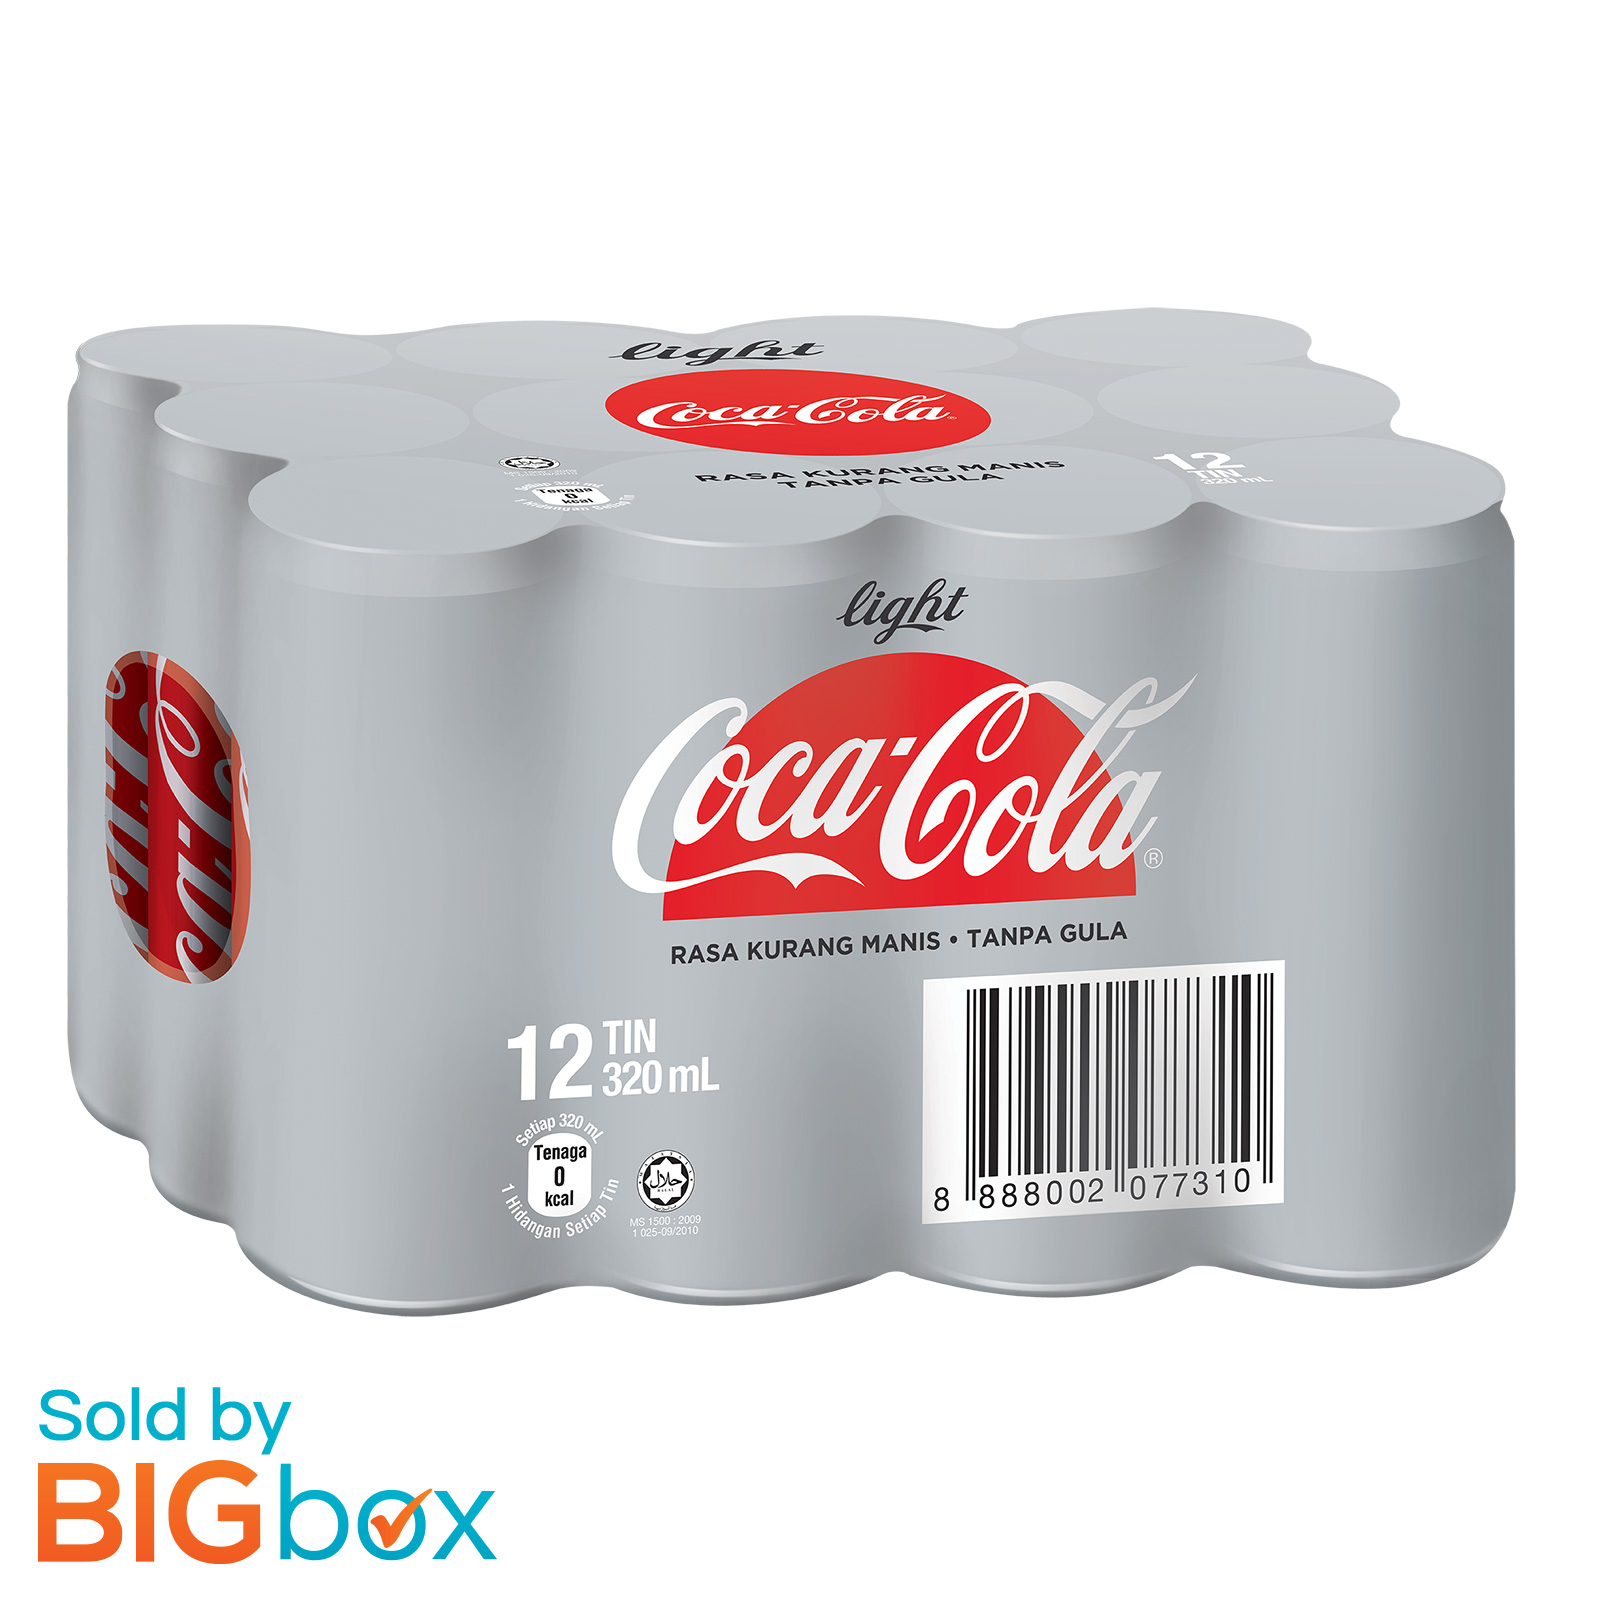 Coca-Cola Light Can 12 x 320ml - Malaysia